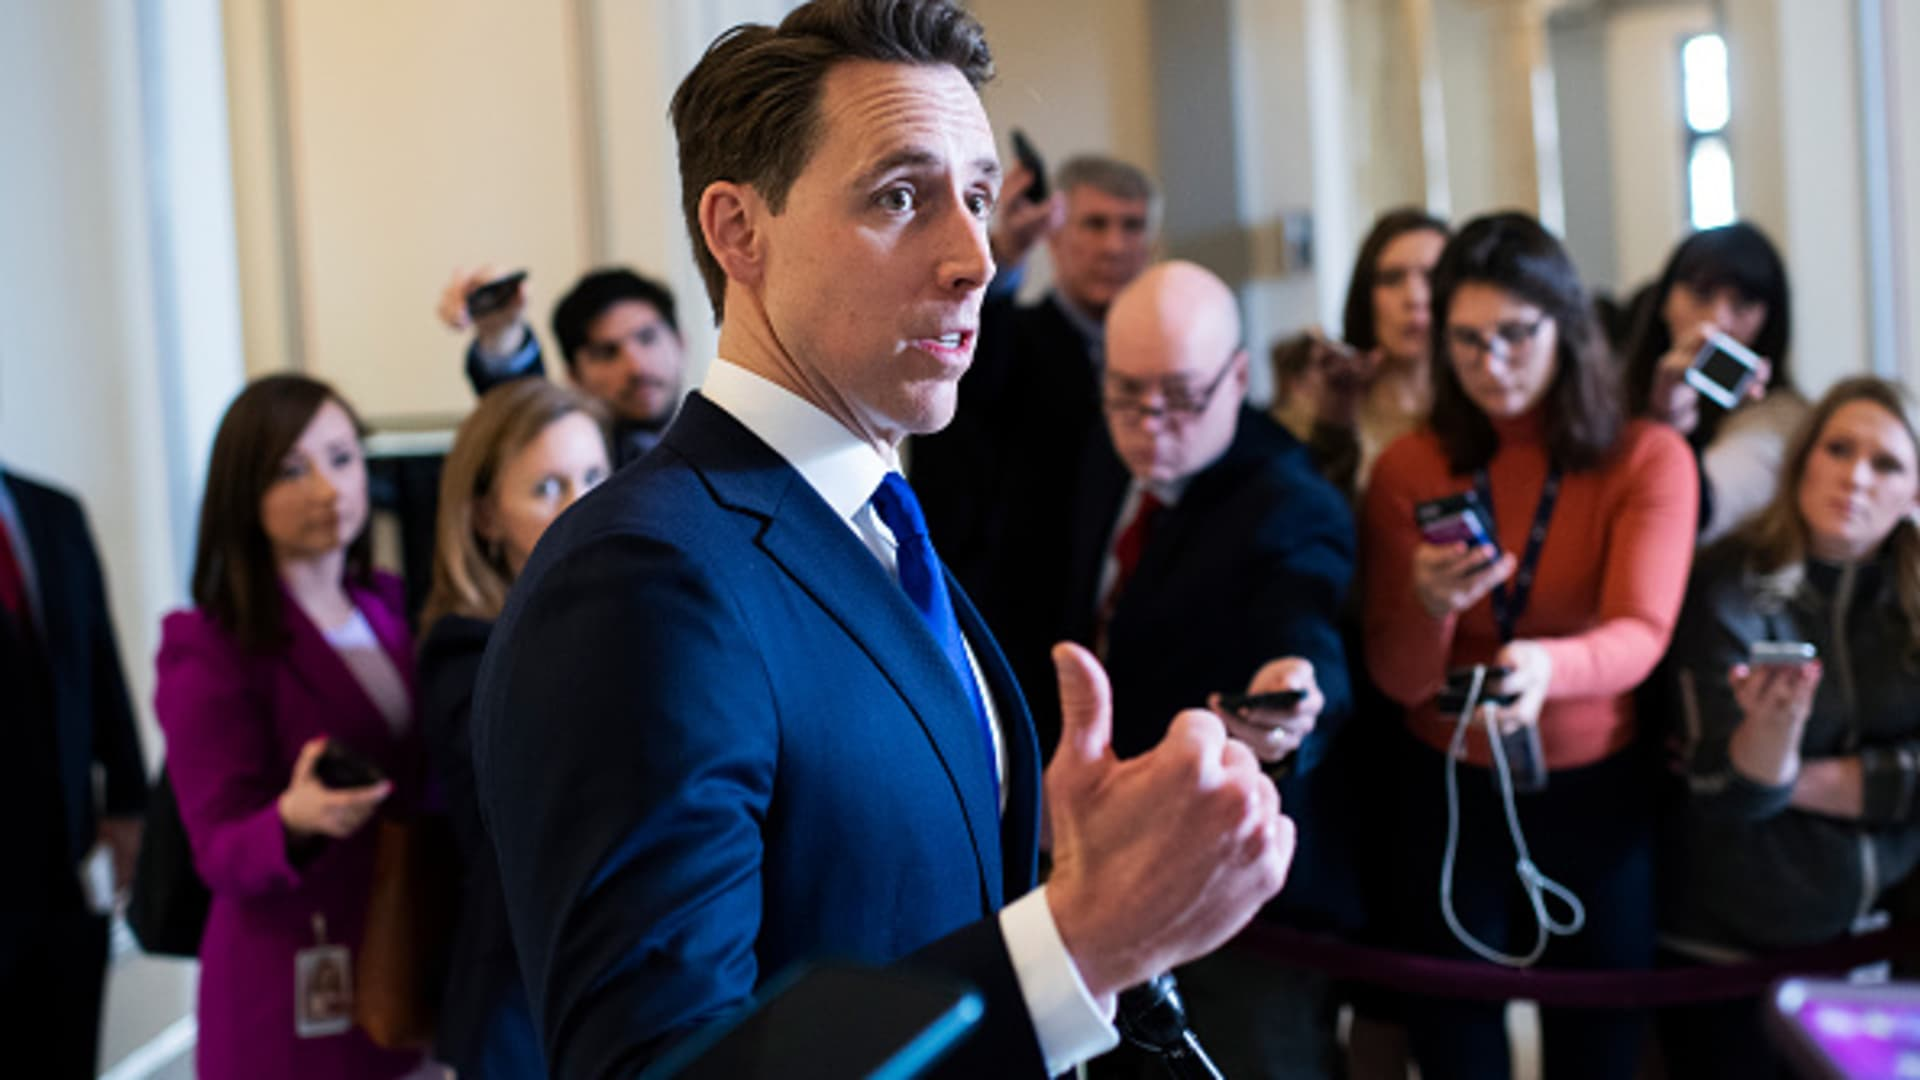 Sen. Josh Hawley, R-Mo., talks with reporters after the Senate Republican Policy luncheon in Russell Building on Tuesday, March 17, 2020.